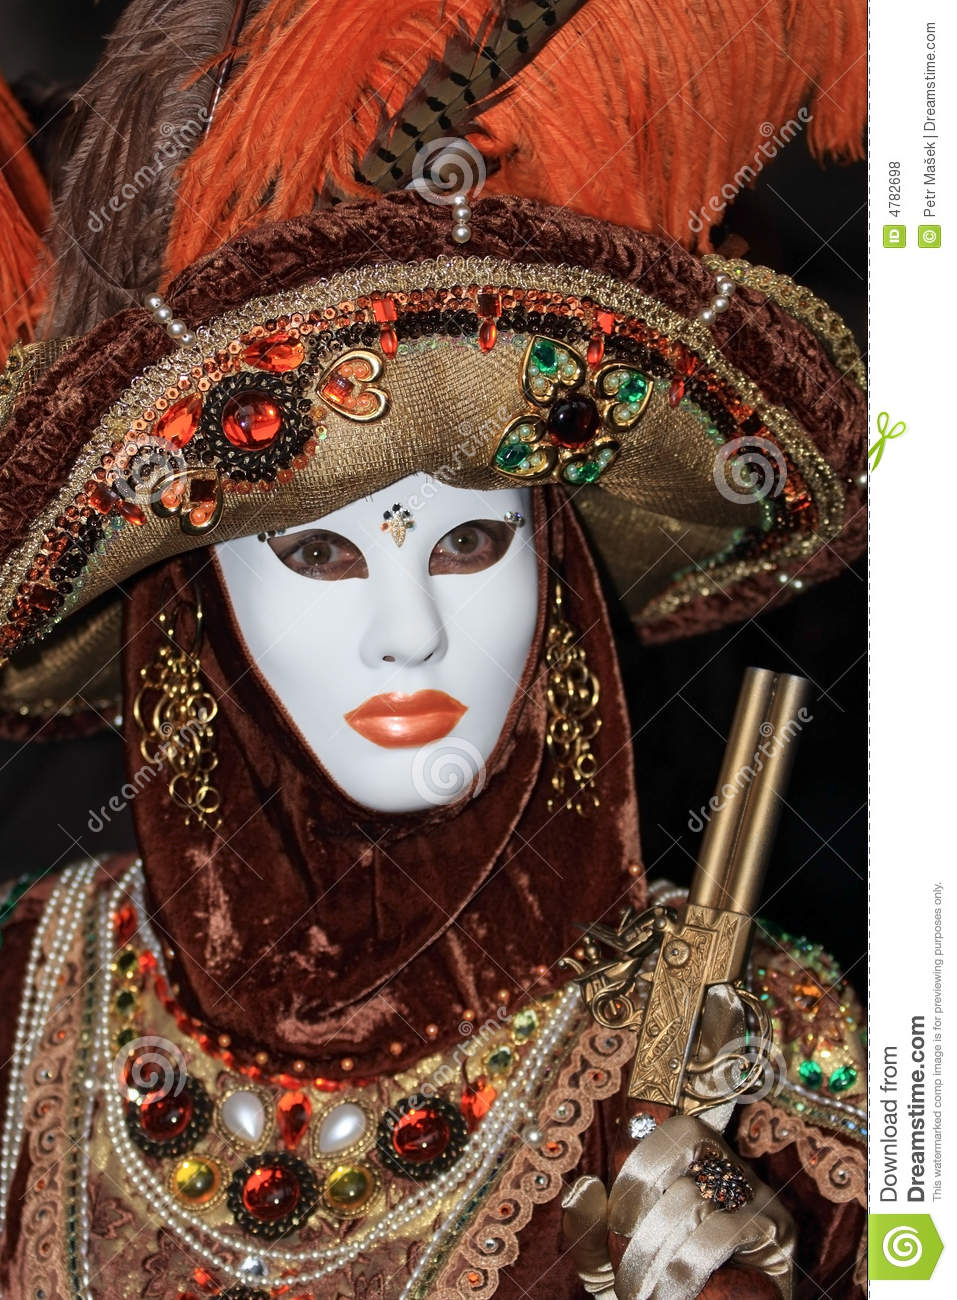 Venice Carnival 2008 Stock Photo, Royalty Free Image: 16192553 - Alamy